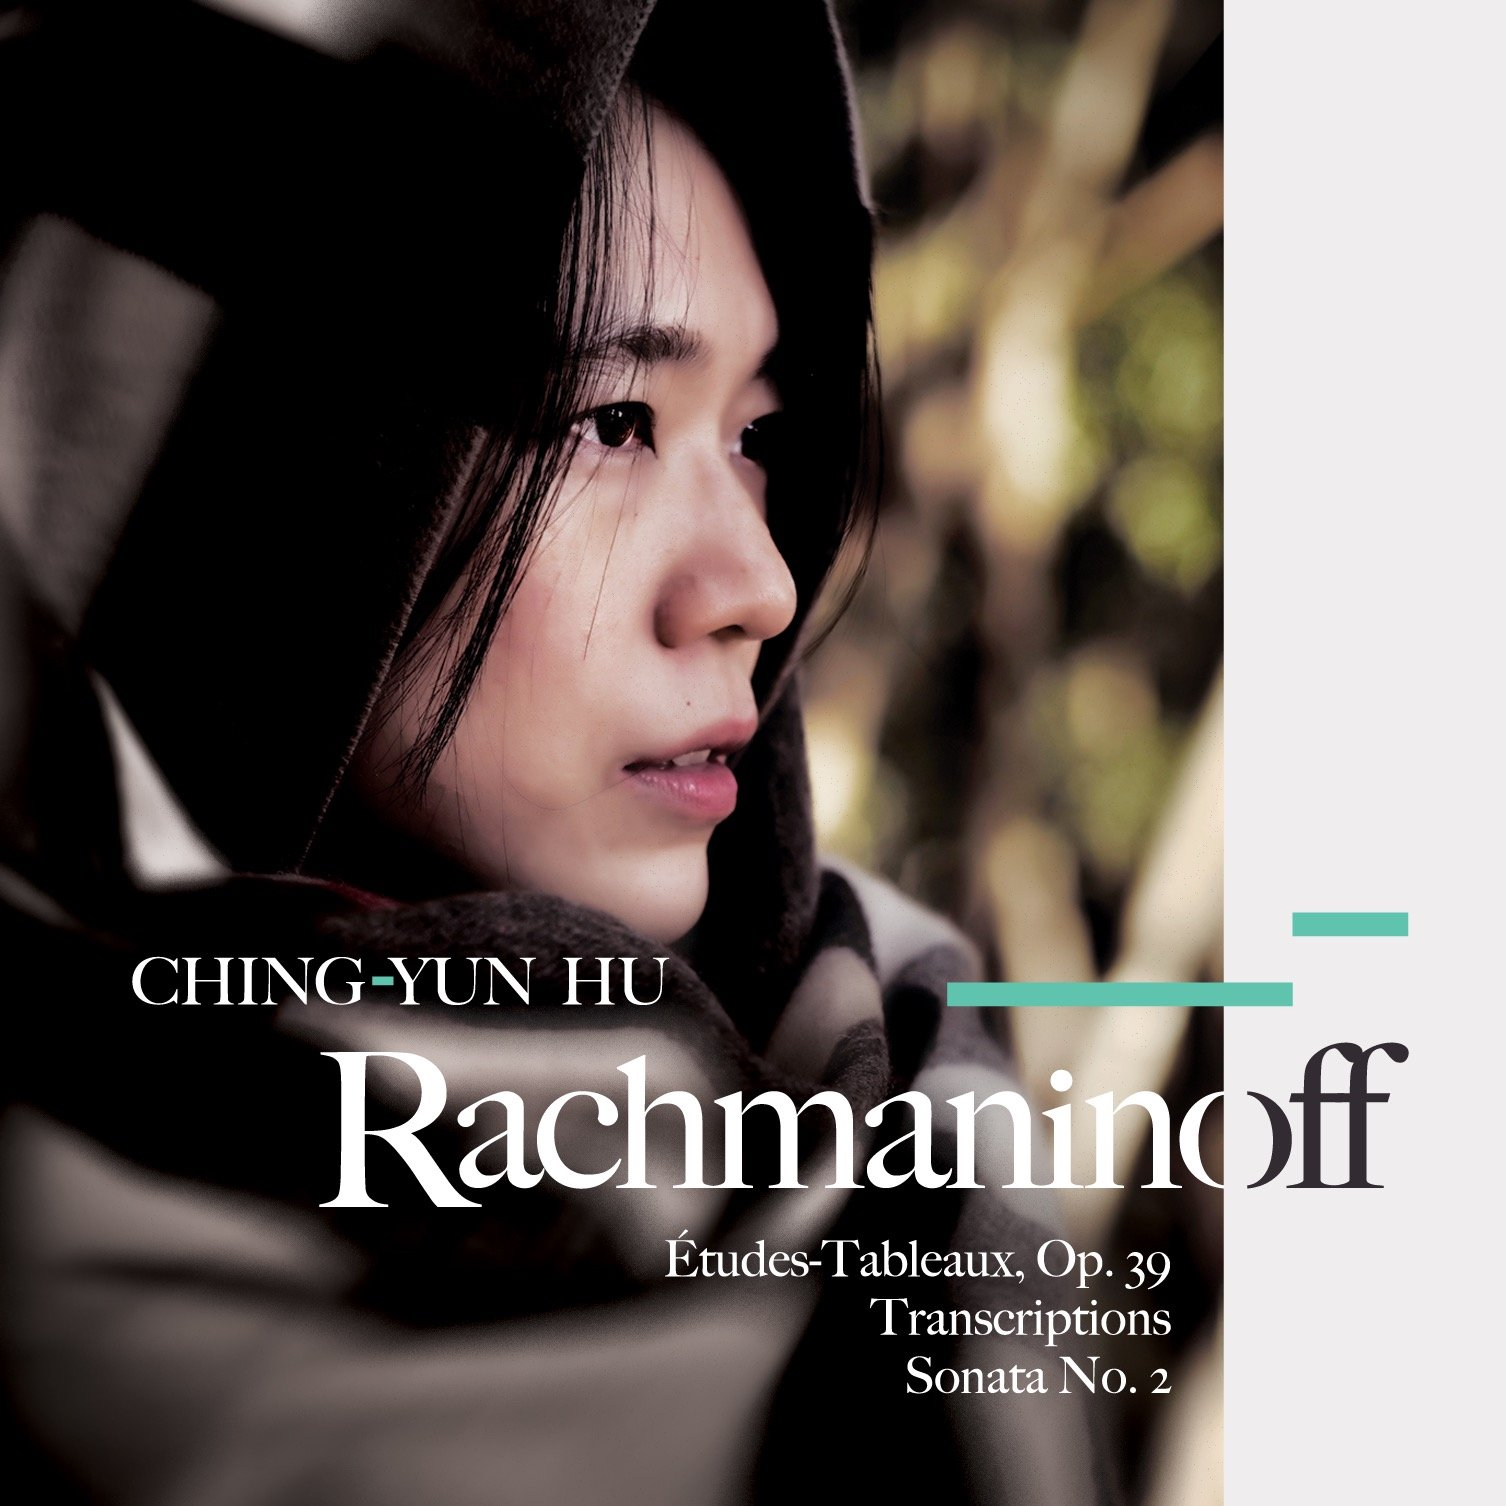 Reloaded twaddle – RT @chingyunhu: My #Rachmaninoff album is now available online! 🎧Ἲ...